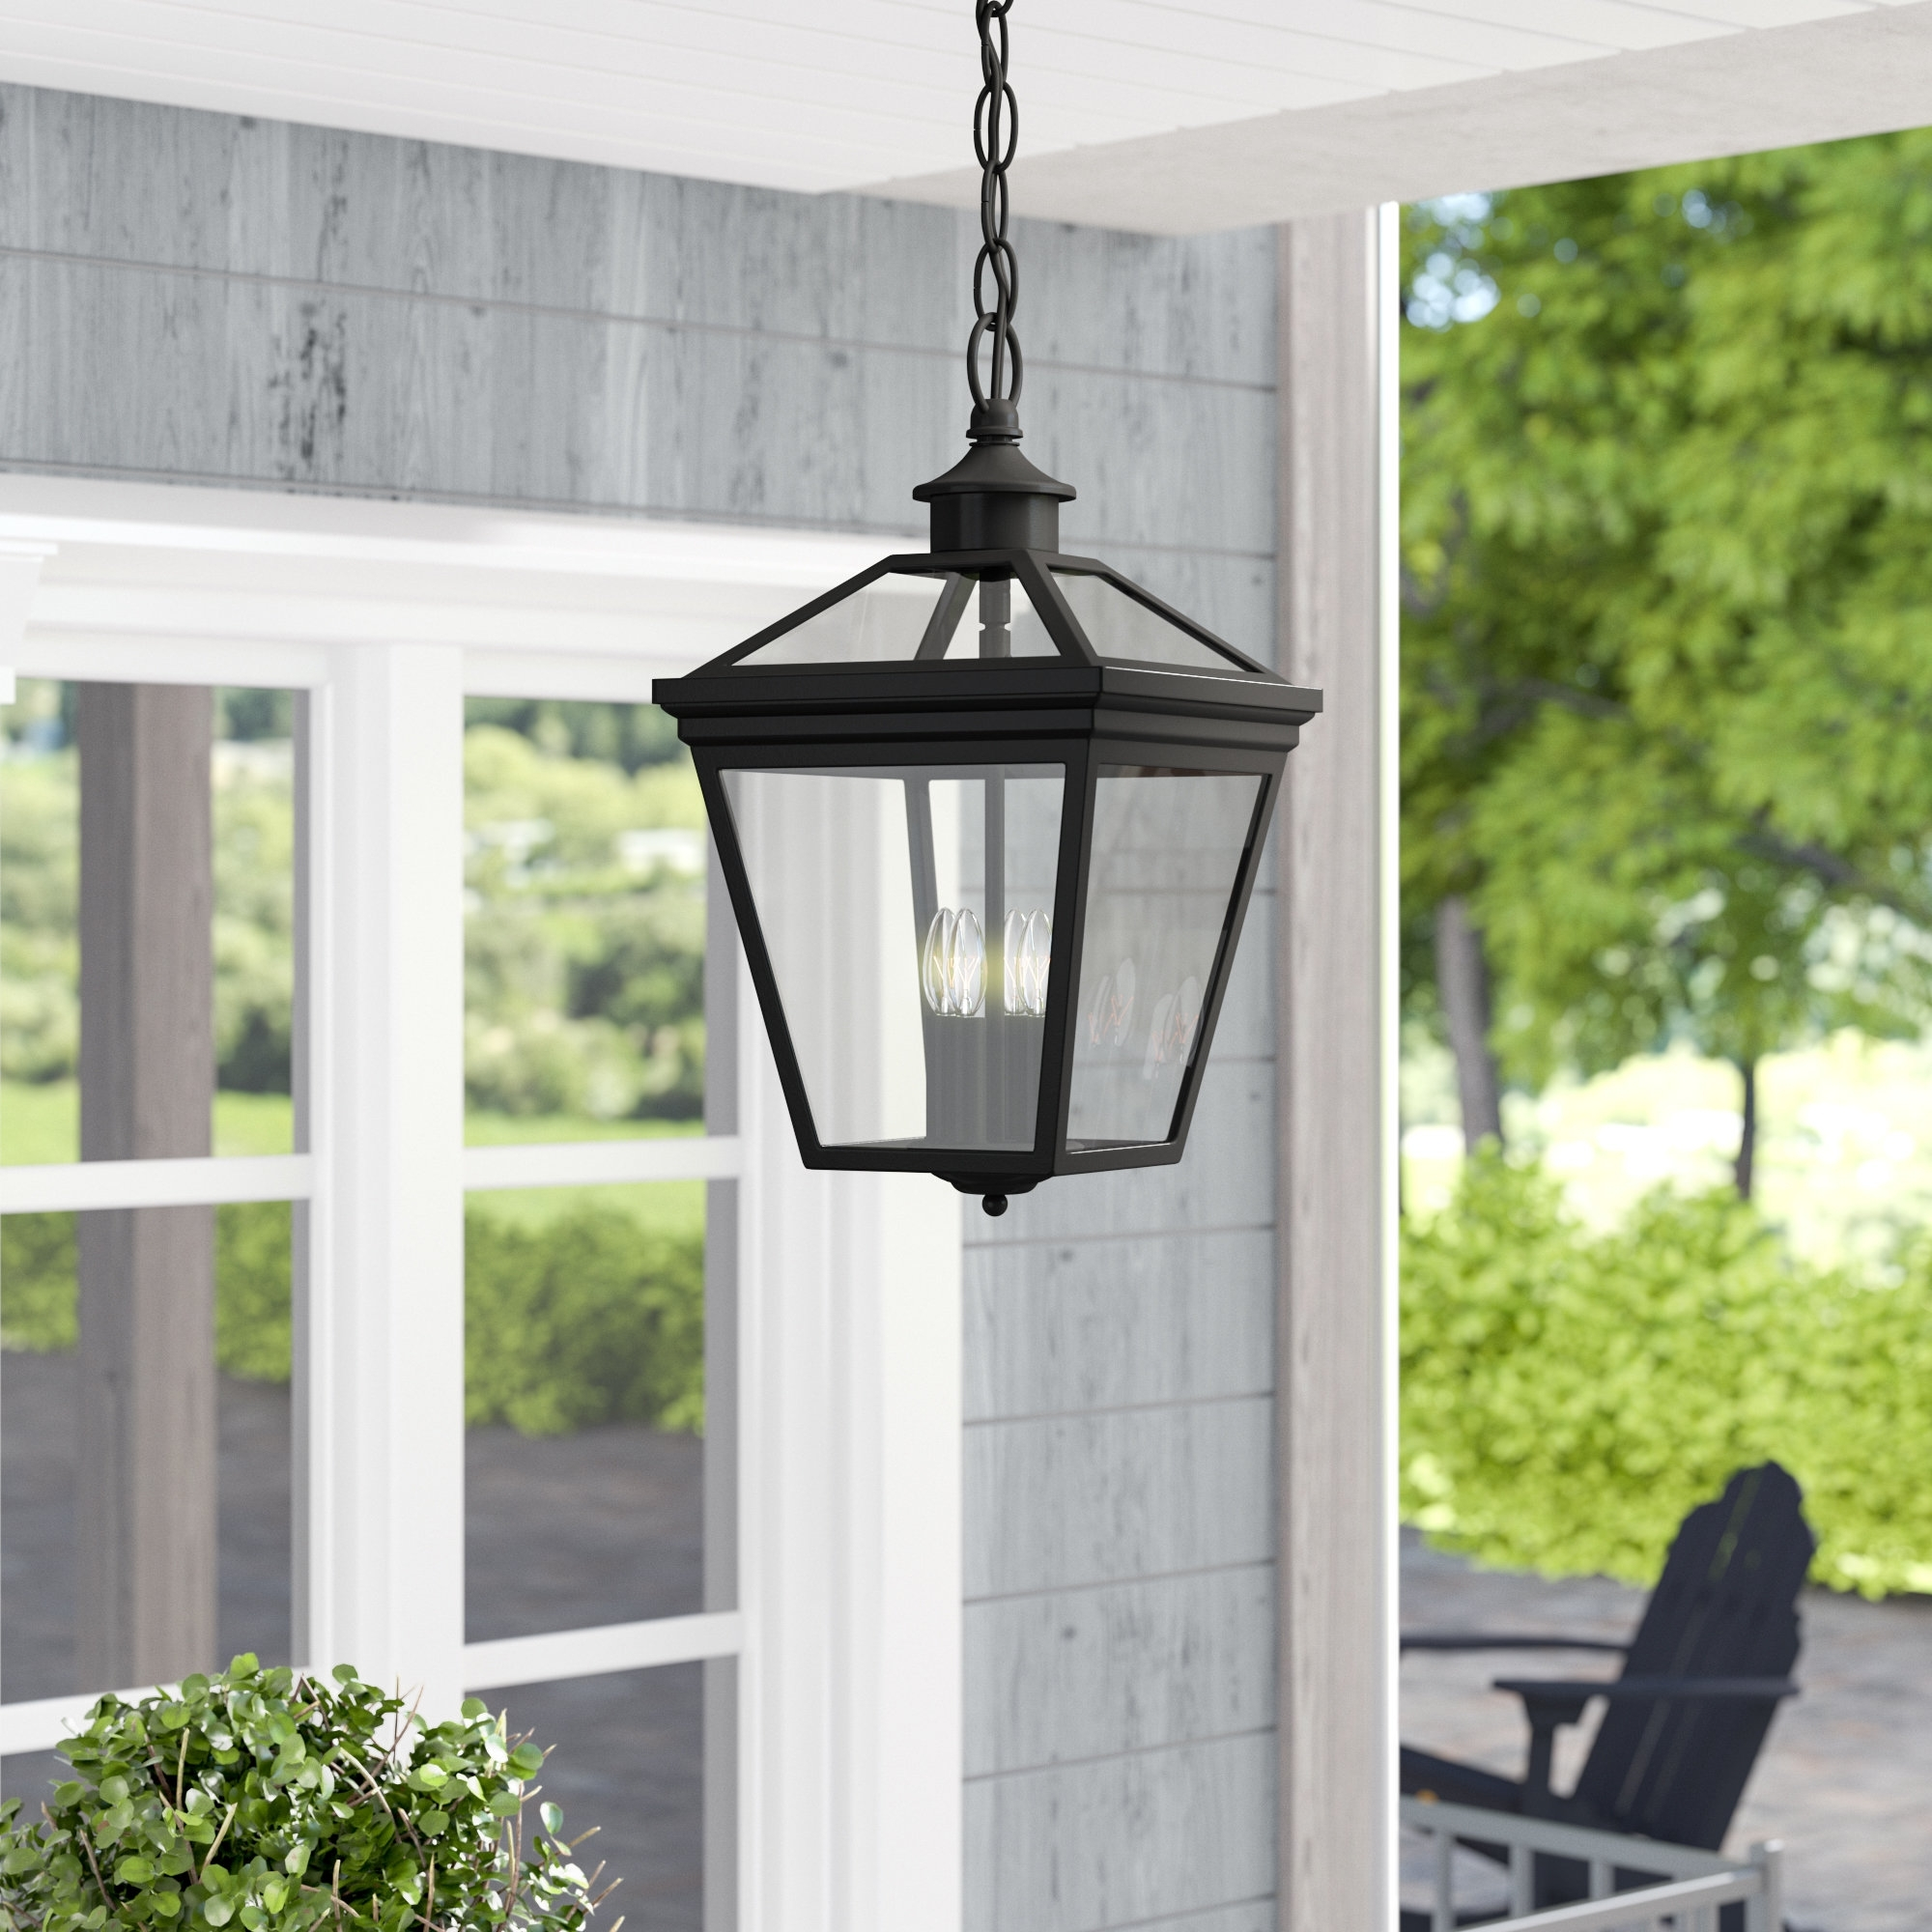 Wayfair Within Most Recently Released Outdoor Vinyl Lanterns (View 7 of 20)